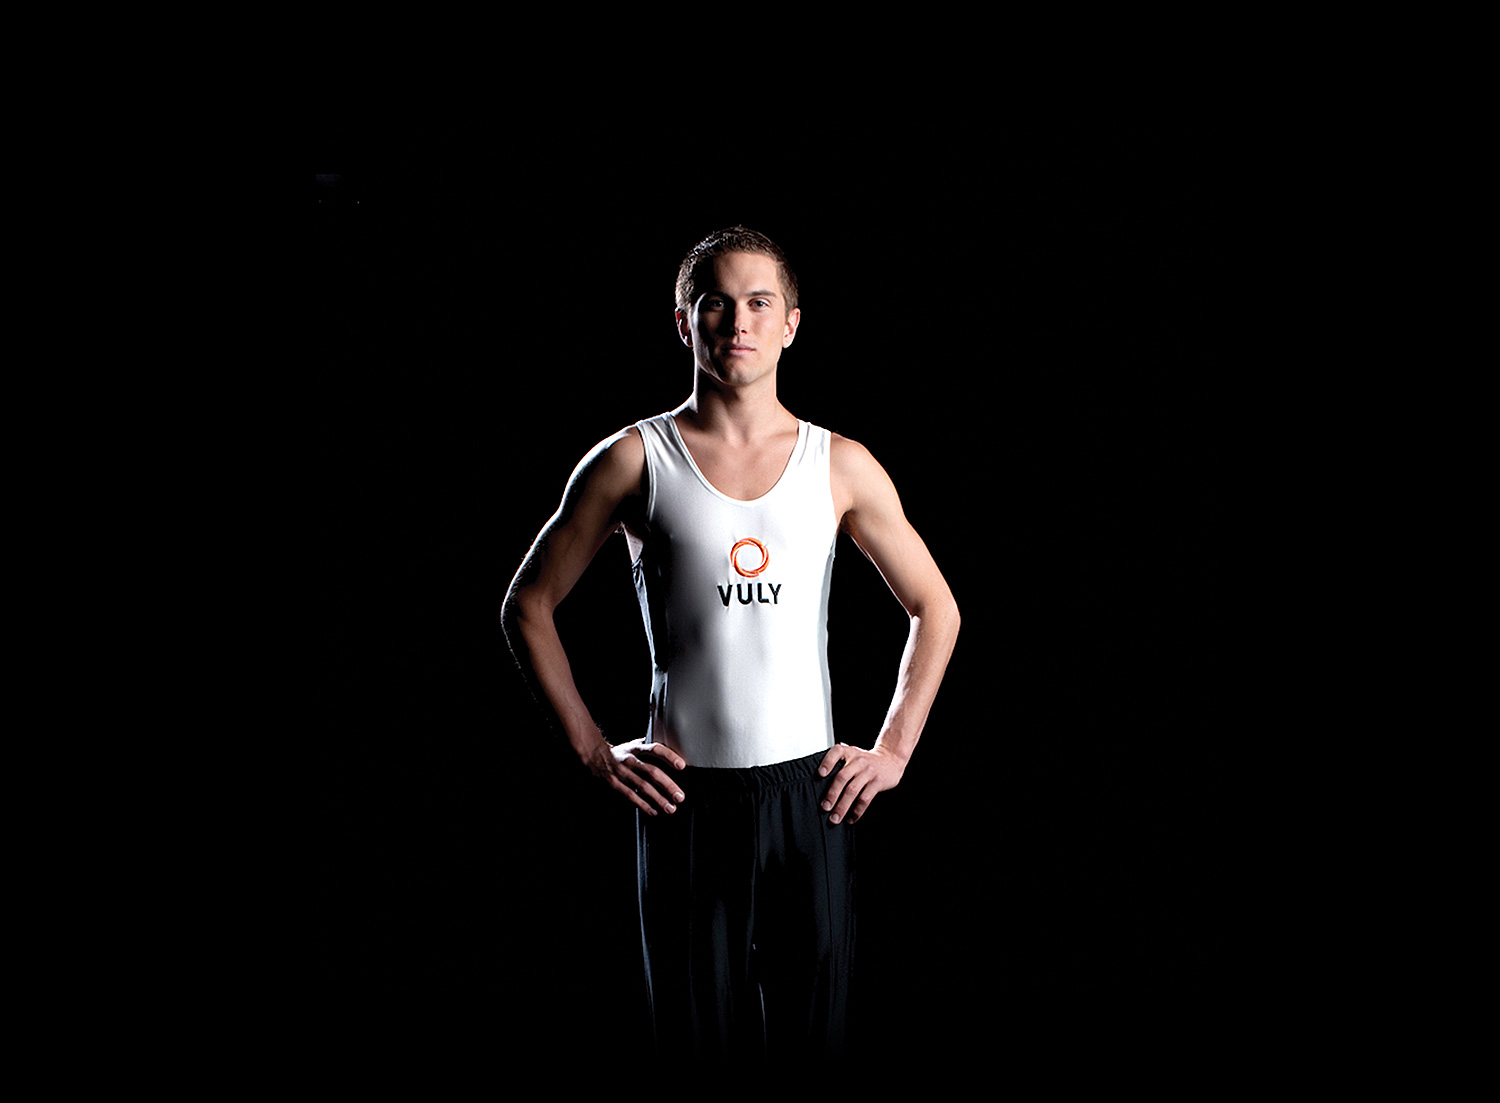 Meet our athlete - Logan Dooley (USA)